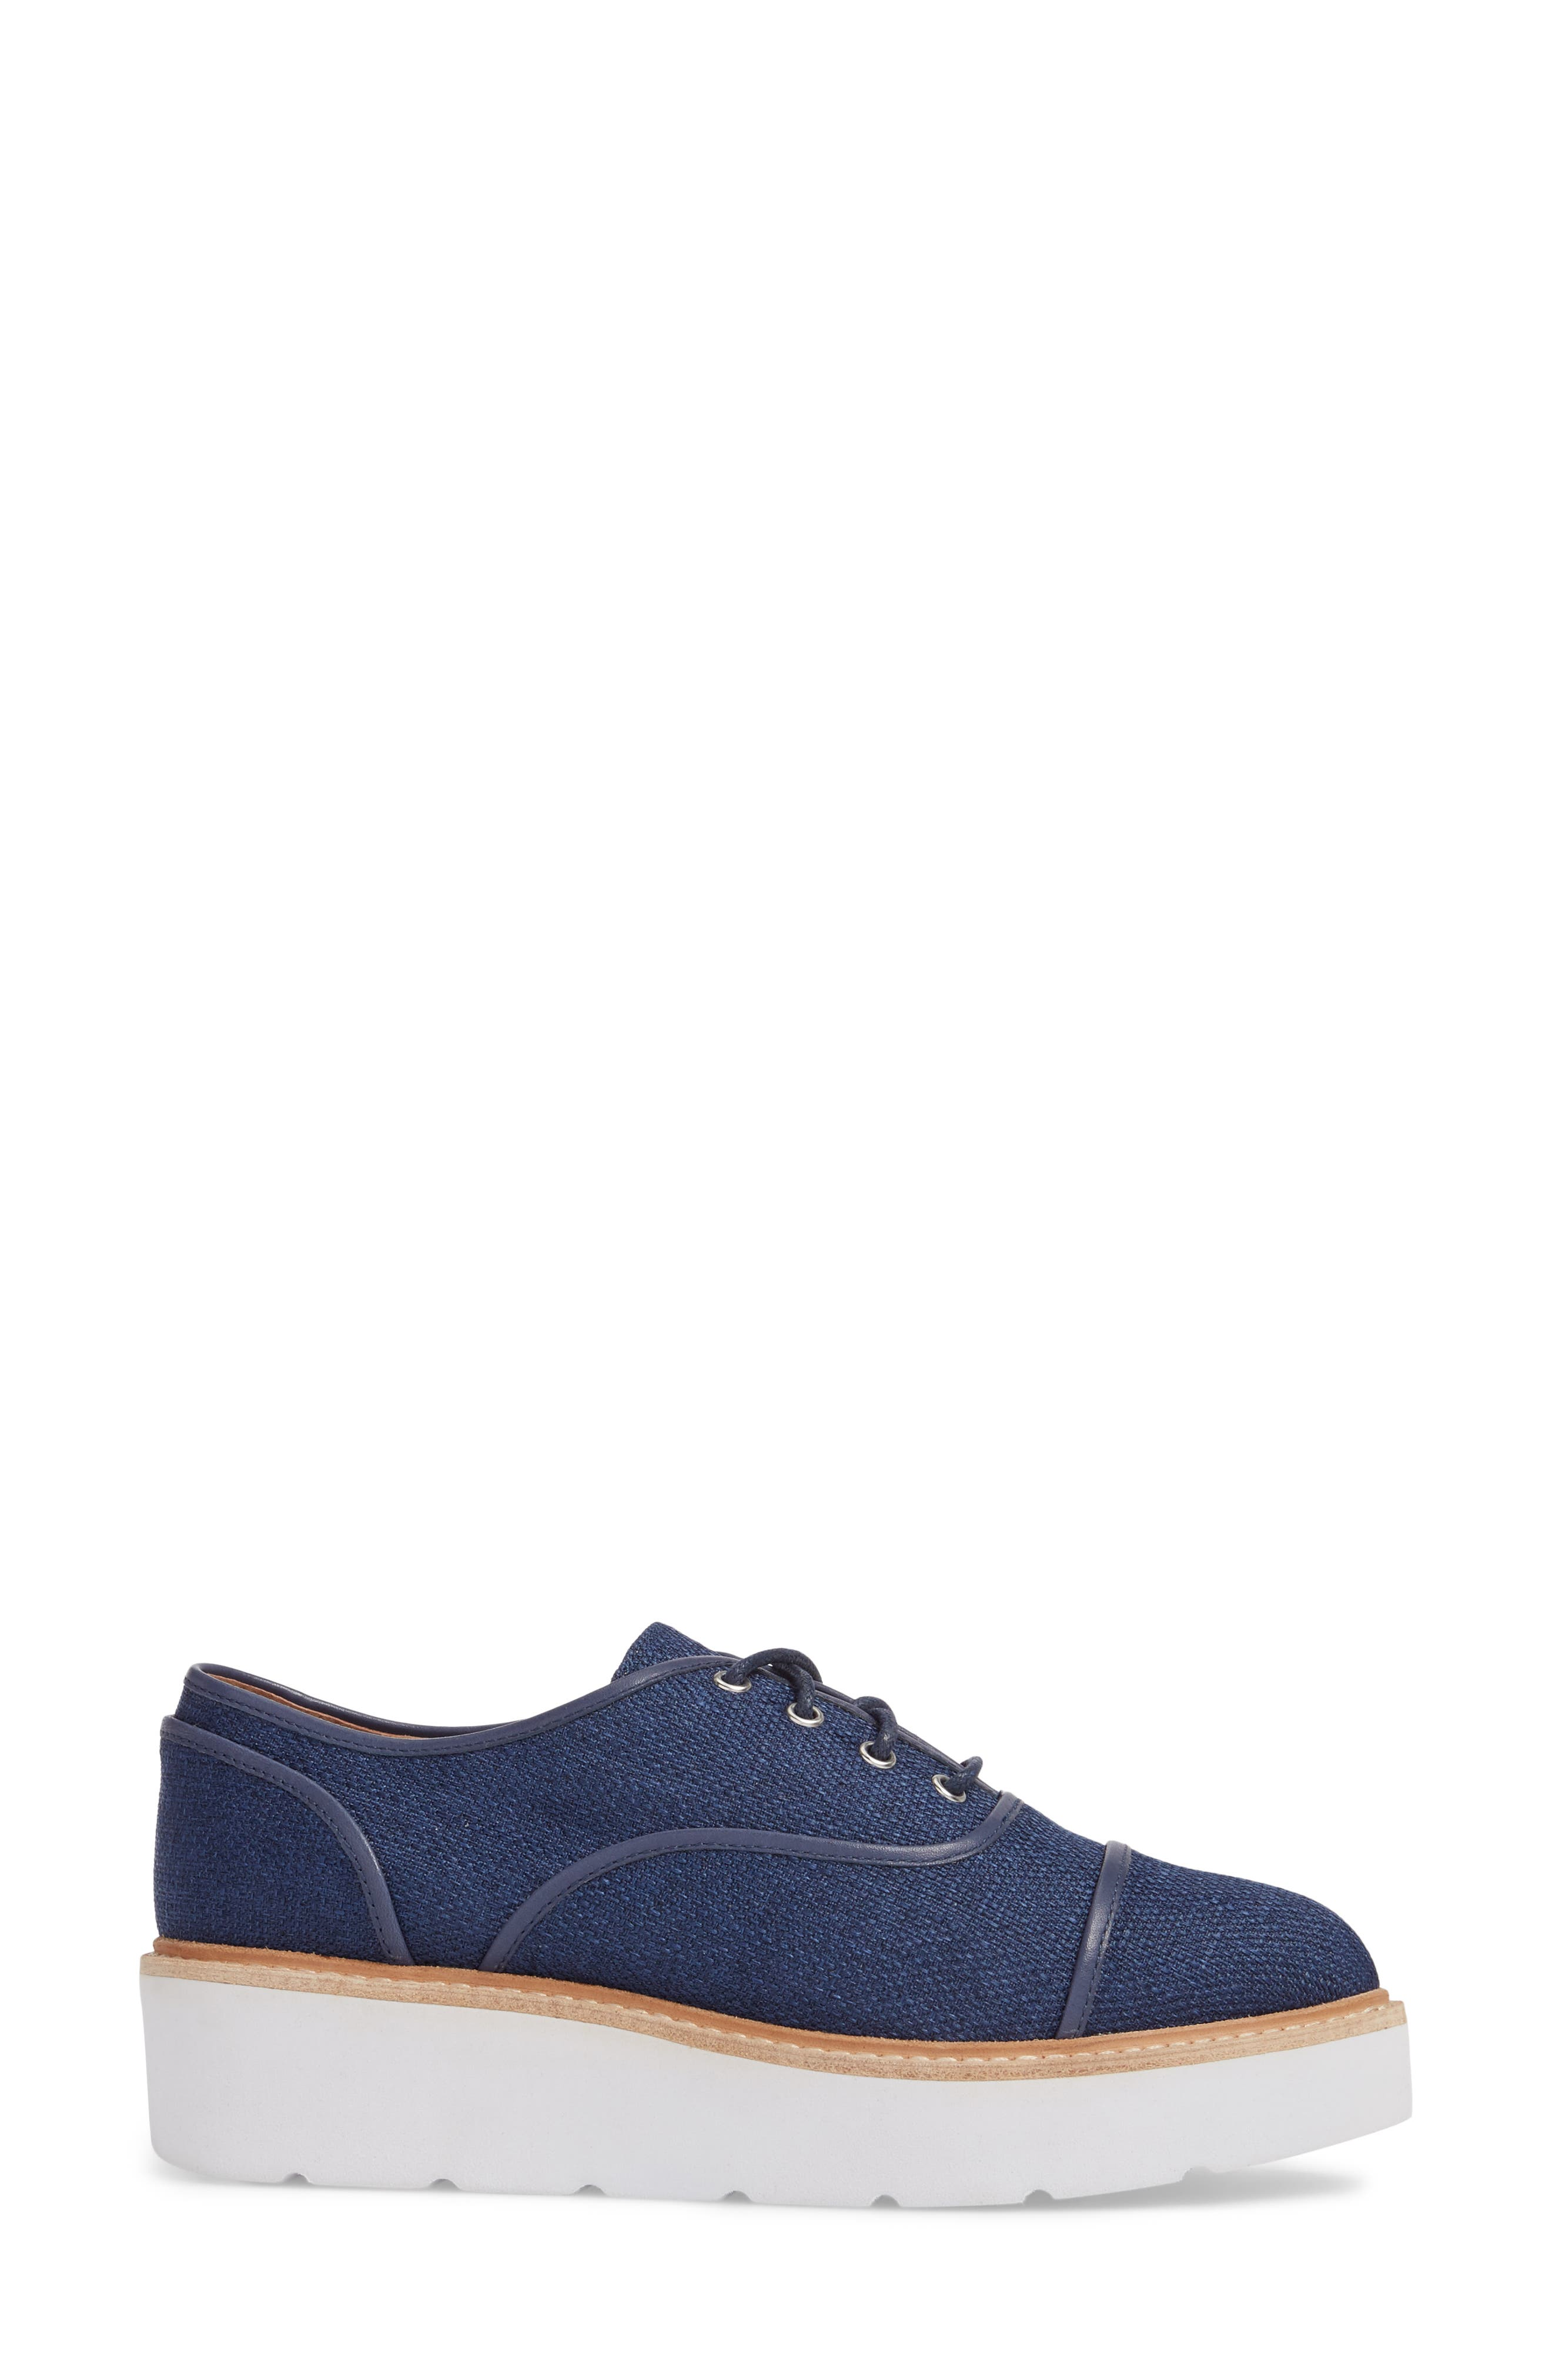 Mavis Cap Toe Platform Sneaker,                             Alternate thumbnail 3, color,                             Blue Fabric